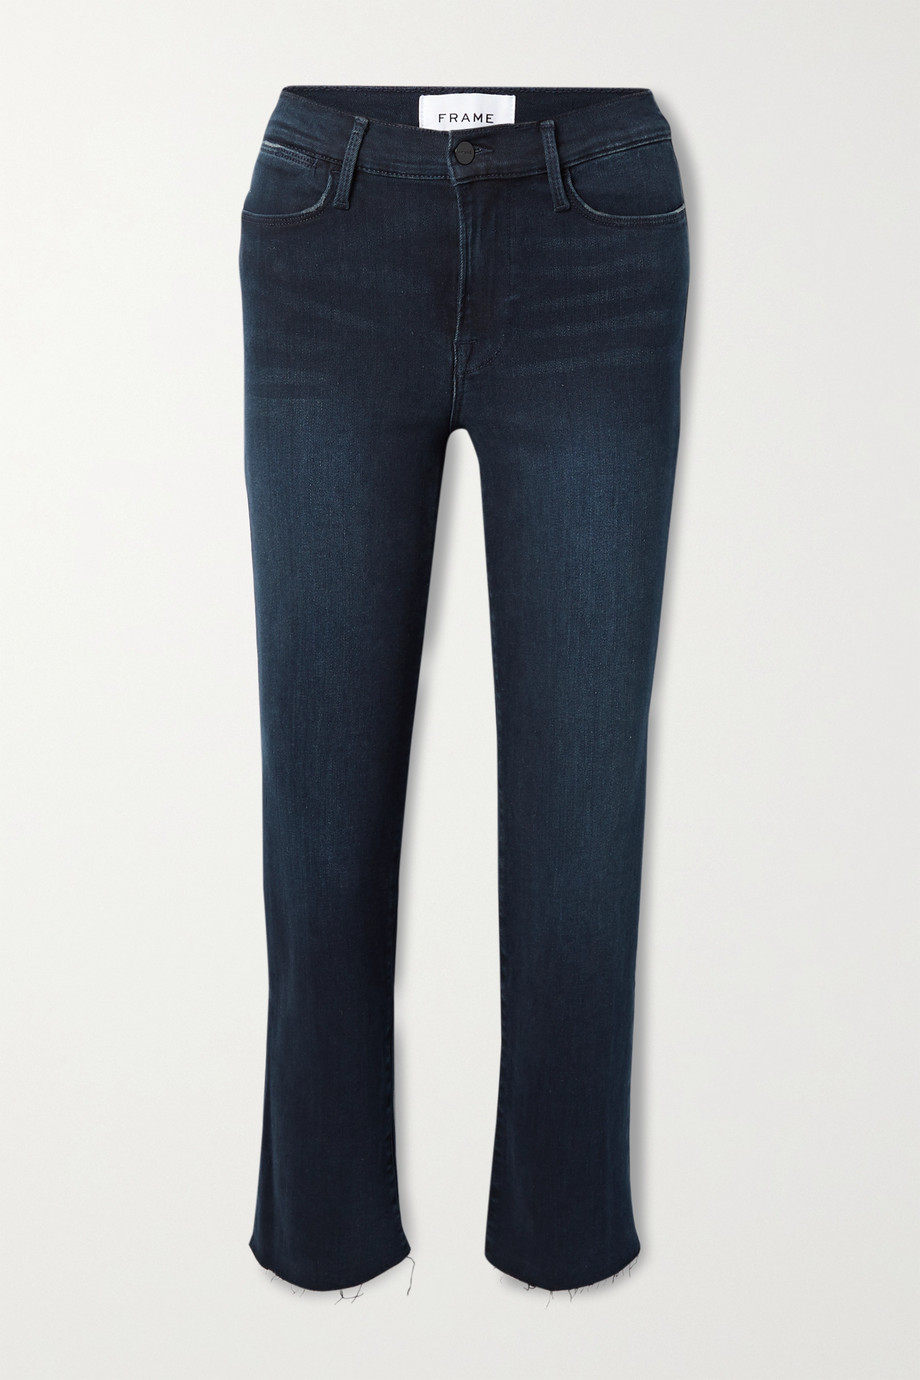 FRAME Le High frayed straight-leg jeans